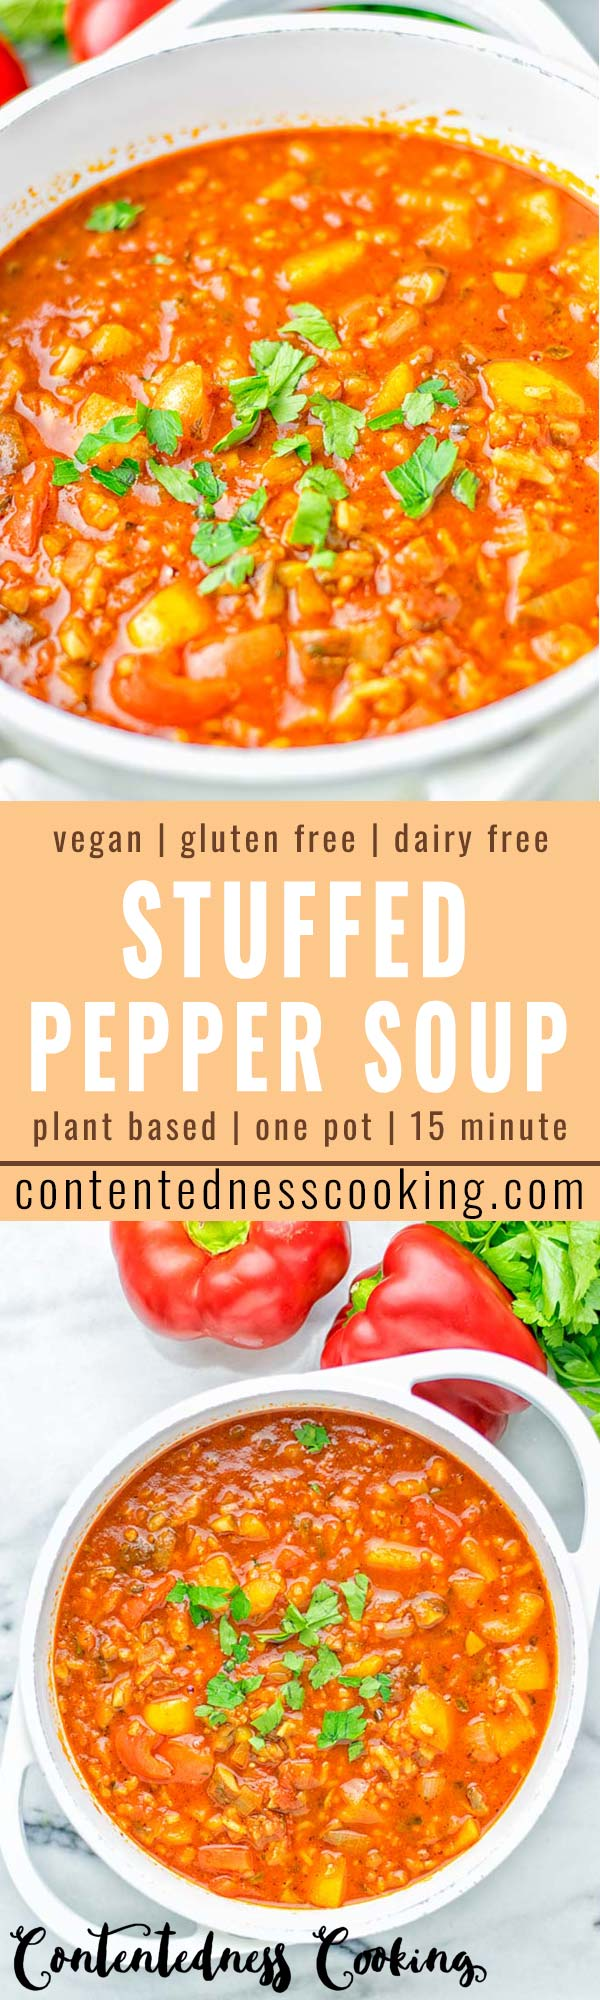 This Stuffed Pepper Soup is full of flavor with little preparation. In only 15 minutes, you have an easy and satisfying one pot meal which is naturally vegan, gluten free. Packed with mesmerizing flavors that the whole family will love for dinner, lunch, meal prep and so much more. Try it now and you will want this every day. #vegan #glutenfree #dairyfree #onepotmeals #vegetarian #mealprep #worklunchideas #stuffedpeppersoup #contentednesscooking #dinner #lunch